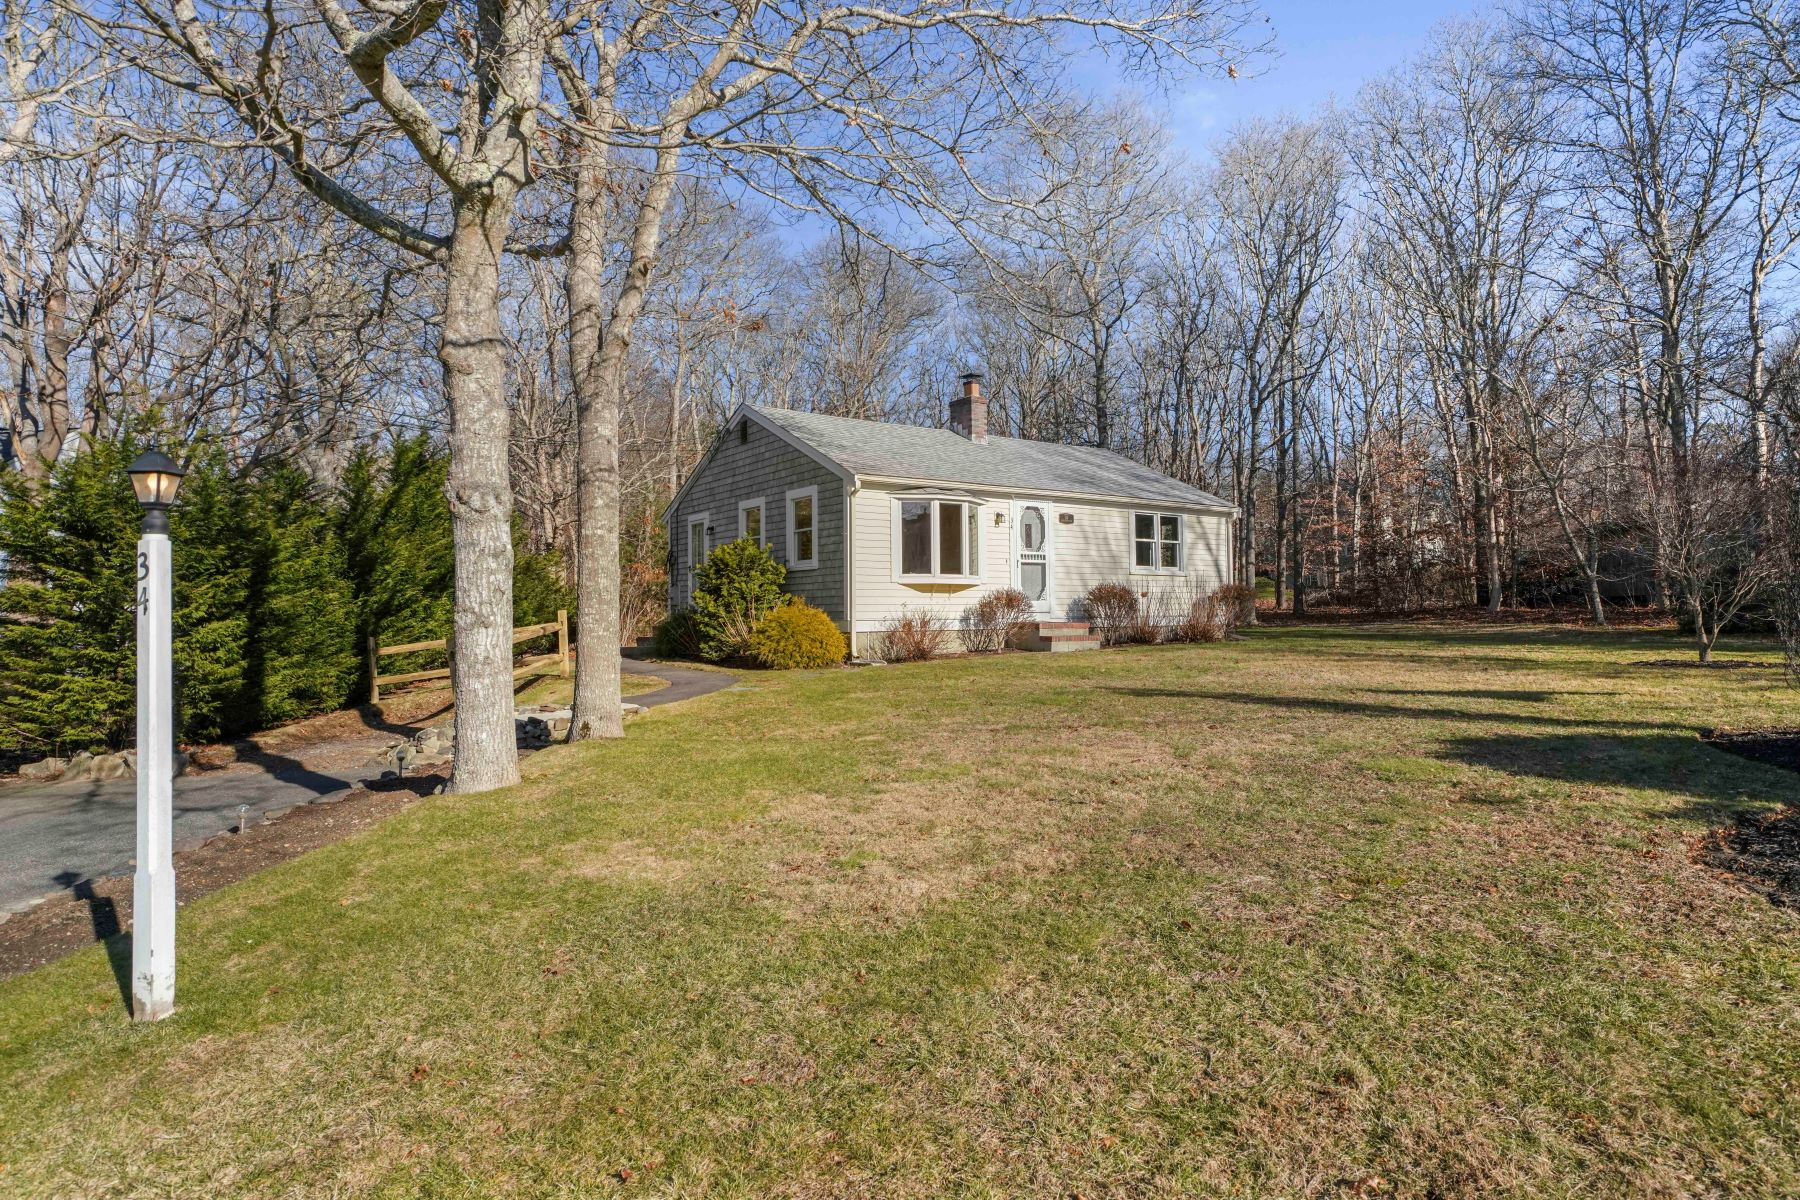 Single Family Homes for Sale at 34 Deer Hollow Road, Sandwich 34 Deer Hollow Sandwich, Massachusetts 02644 United States